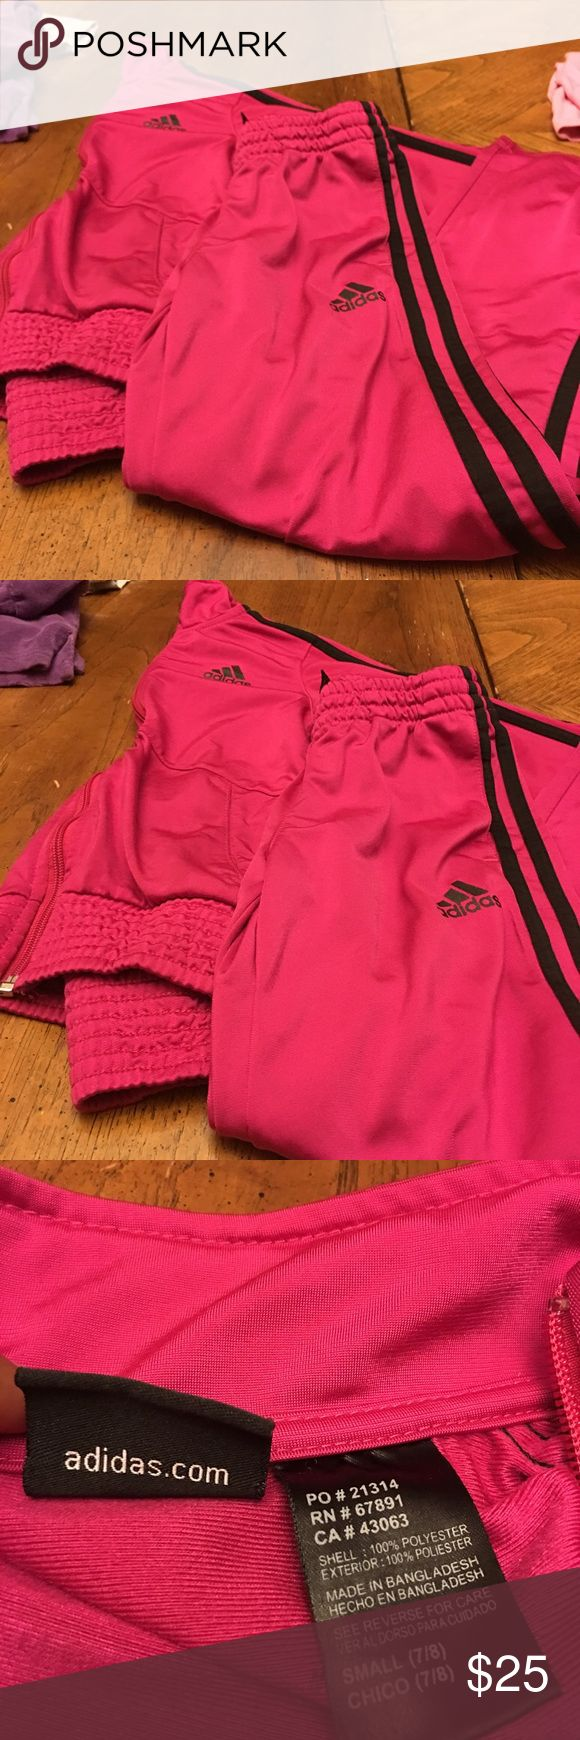 Jogger suit for kids Pink and black jogging suits for girls adidas Other